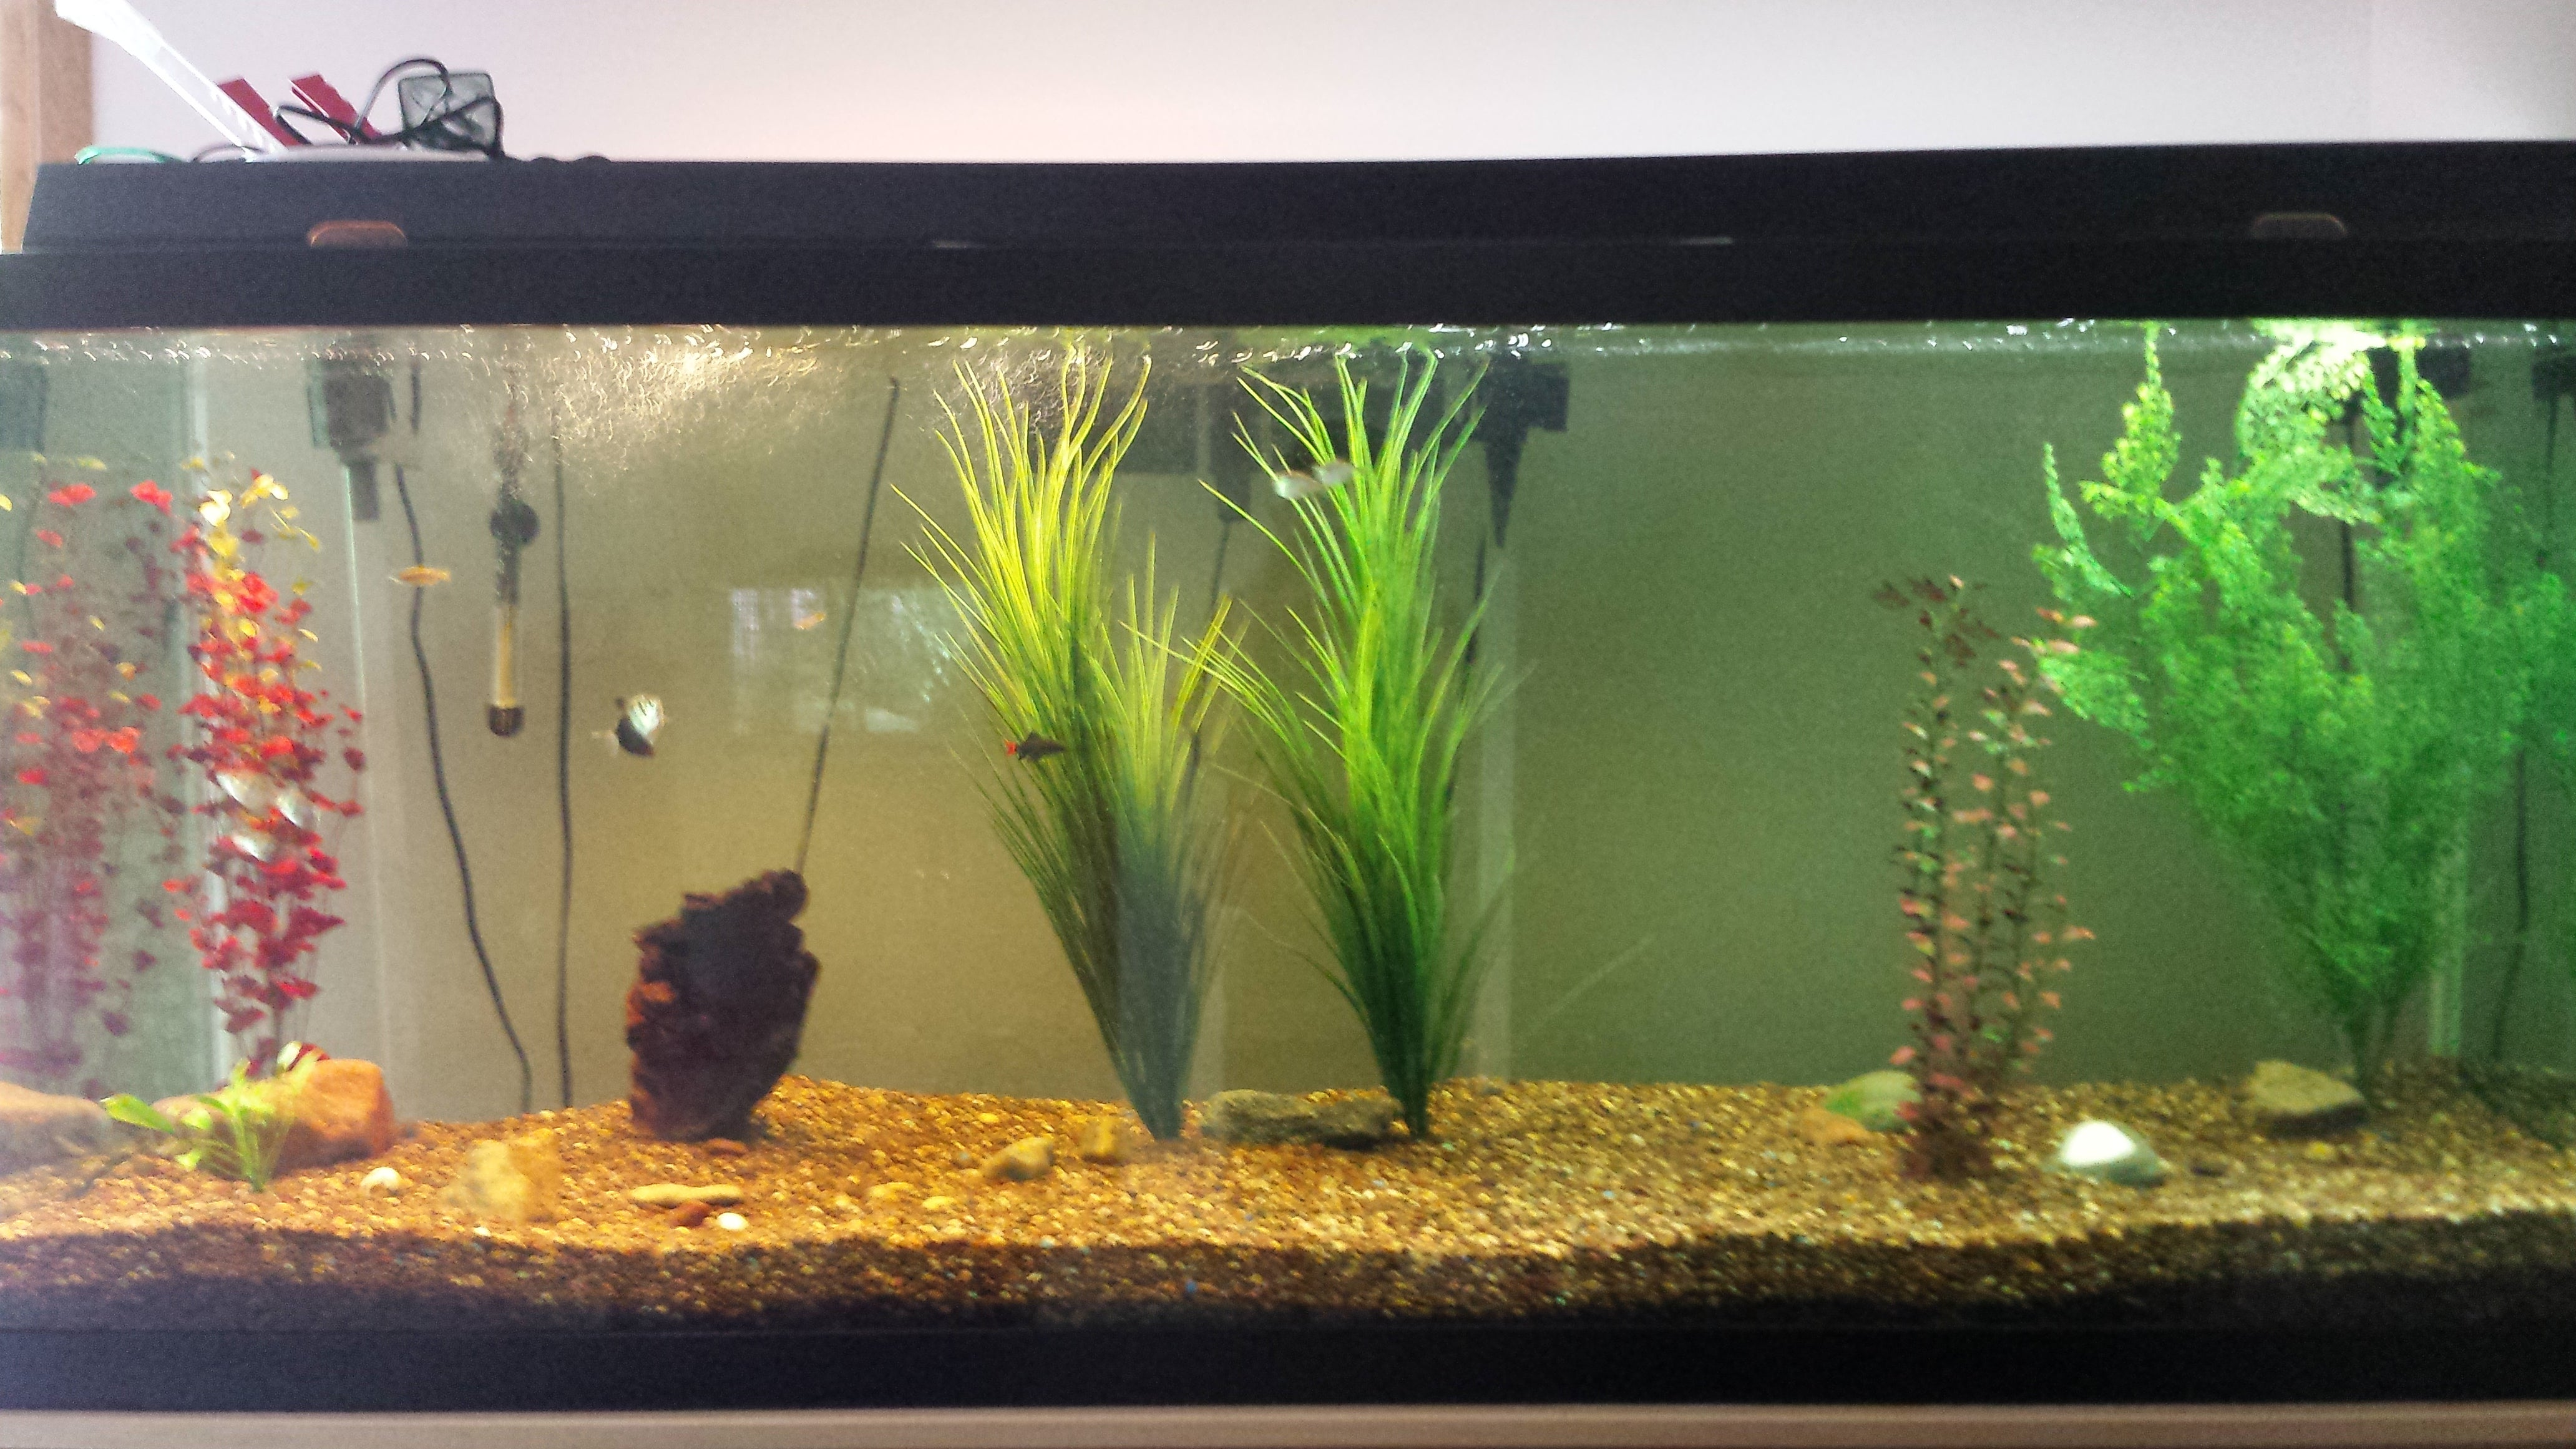 Diy How To Set Up A Fish Tank 9 Steps With Pictures Instructables